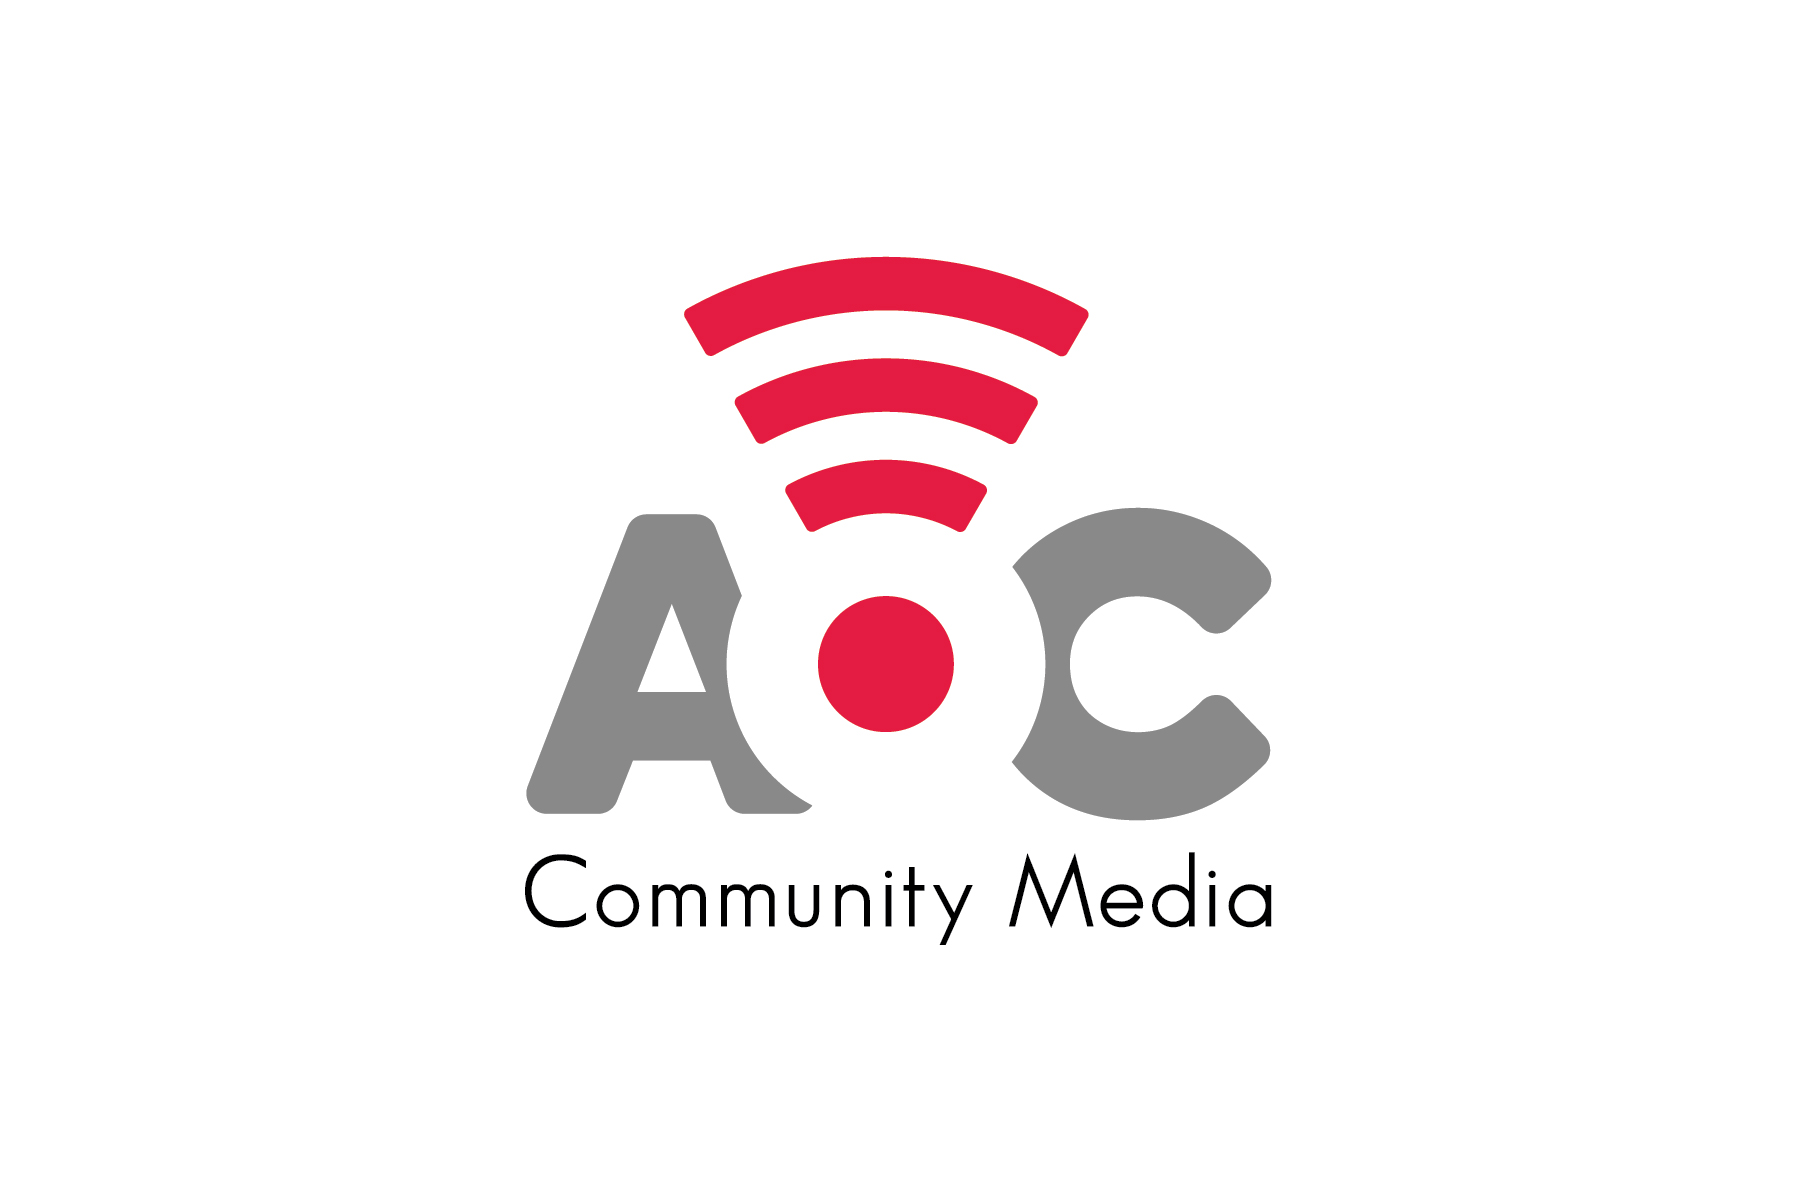 AOC_logo_full_color.png